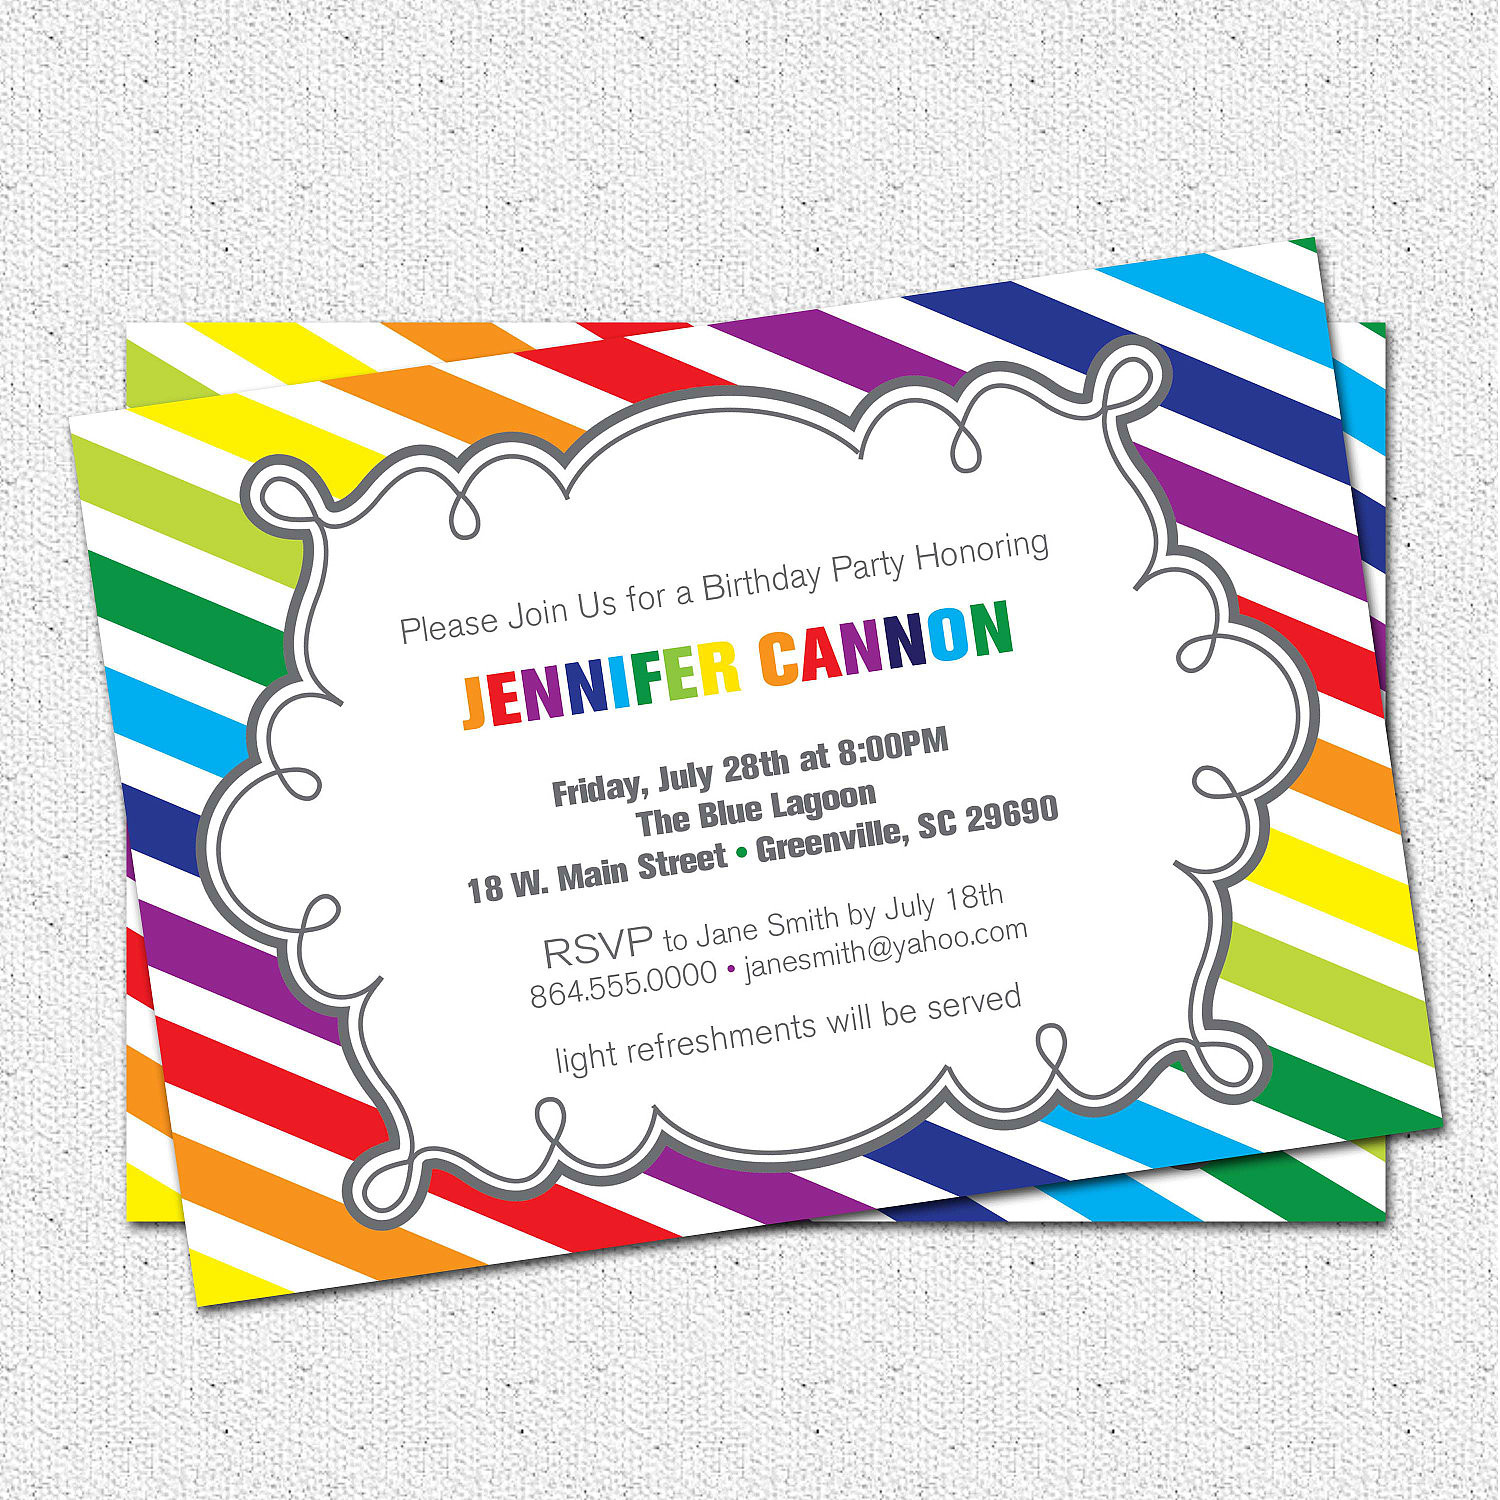 Best ideas about Birthday Party Invitations Free . Save or Pin Birthday Invitation Templates free printable birthday Now.